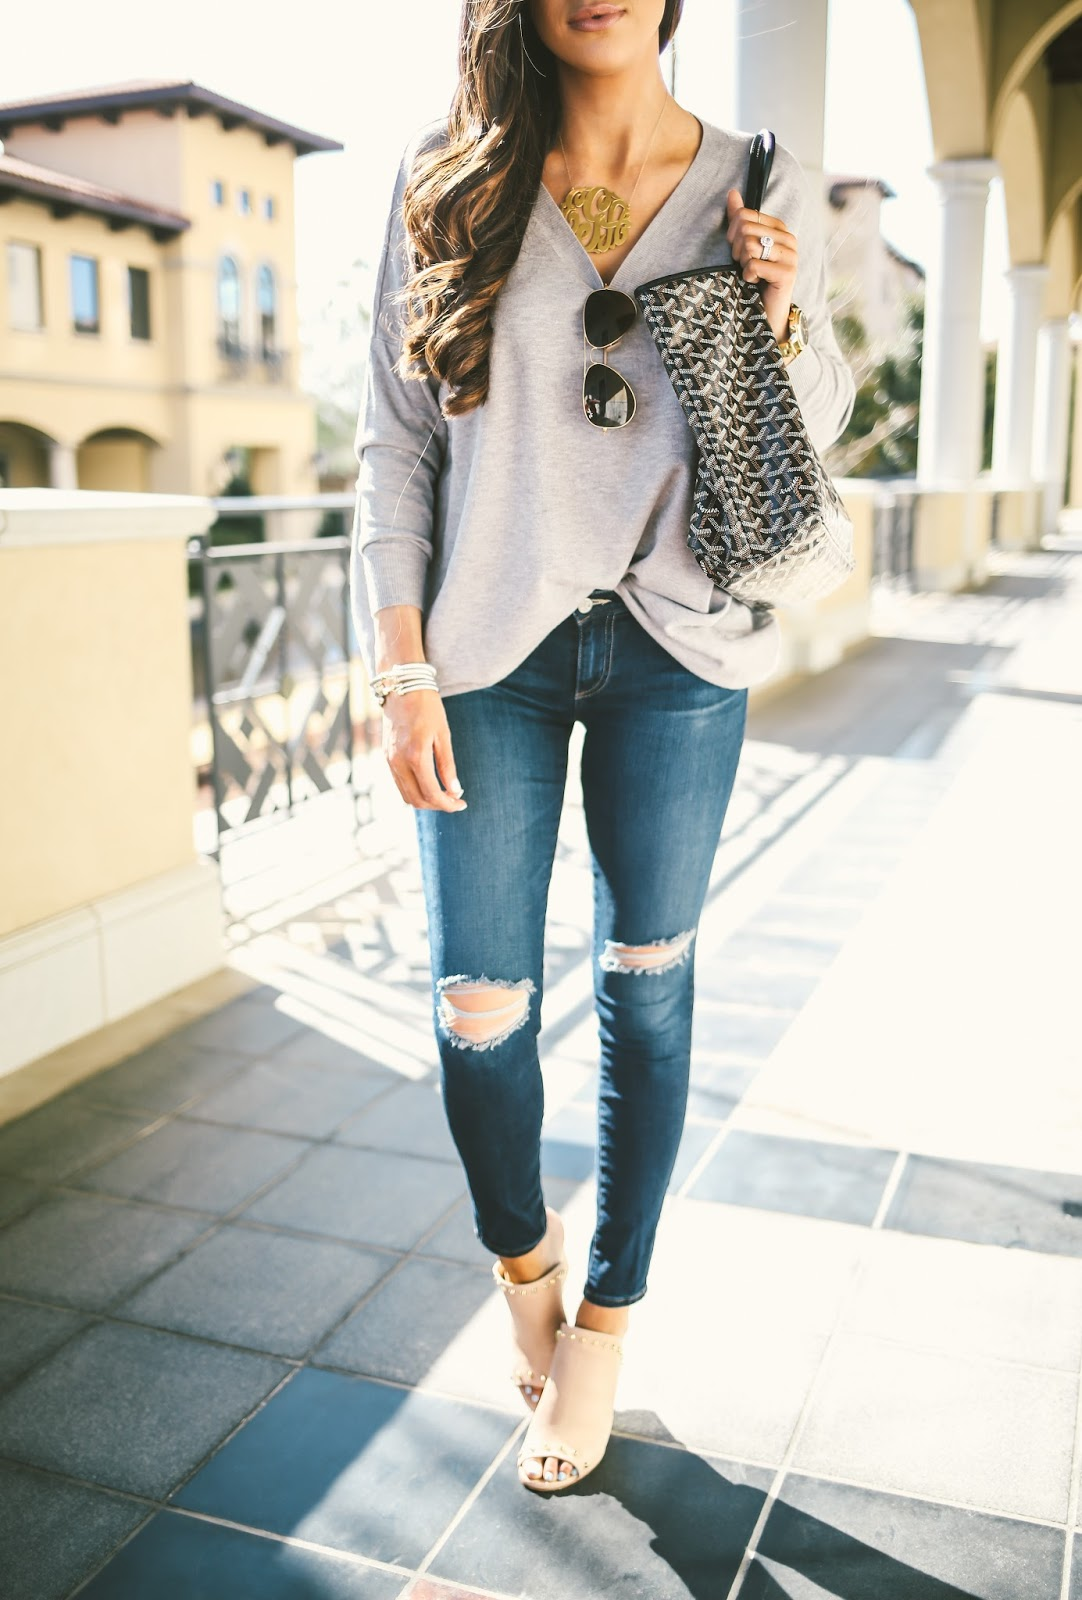 goyard PM handbag, black goyard bag, oversized gold monogram necklace, love always monogram necklace, AG jeans ripped knees, AG jeans ankle length skinny, Dreamer grey sweater, easy outfit idea, cute outfit ideas pinterest, easy to put together outfit ideas,  stuart weitzman upfrontal wedge, brunette balayage, brunette medium haircut, brunette long layers haircut, pinterest spring outfit ideas, pinterest cutest outfit ideas, emily gemma, the sweetest thing blog, tulsa fashion blog, michael kors watch with black face, david yurman bracelets stack, pinterest sweater jeans and wedges outfit